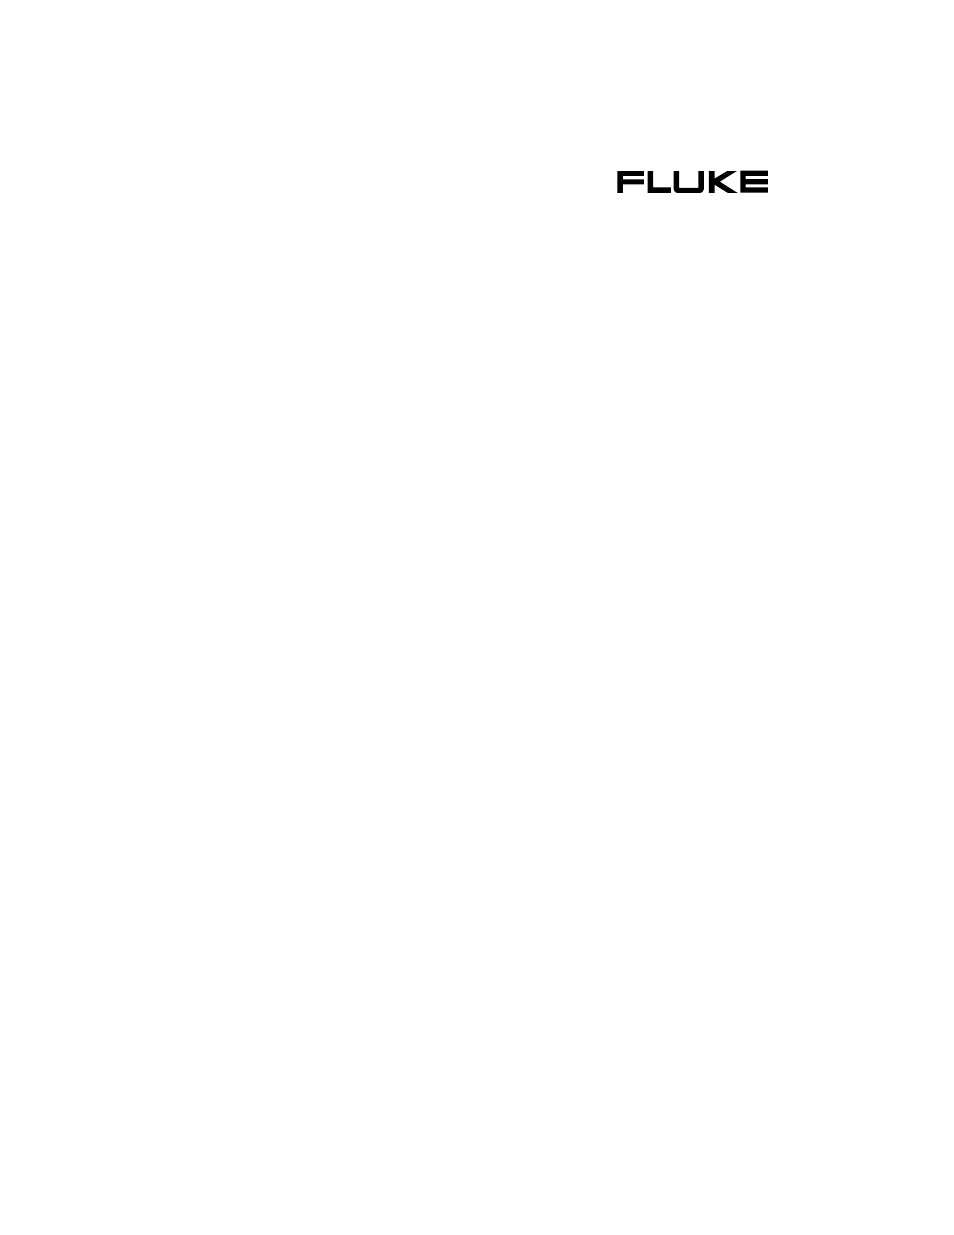 Fluke 77 User Manual | 59 pages on